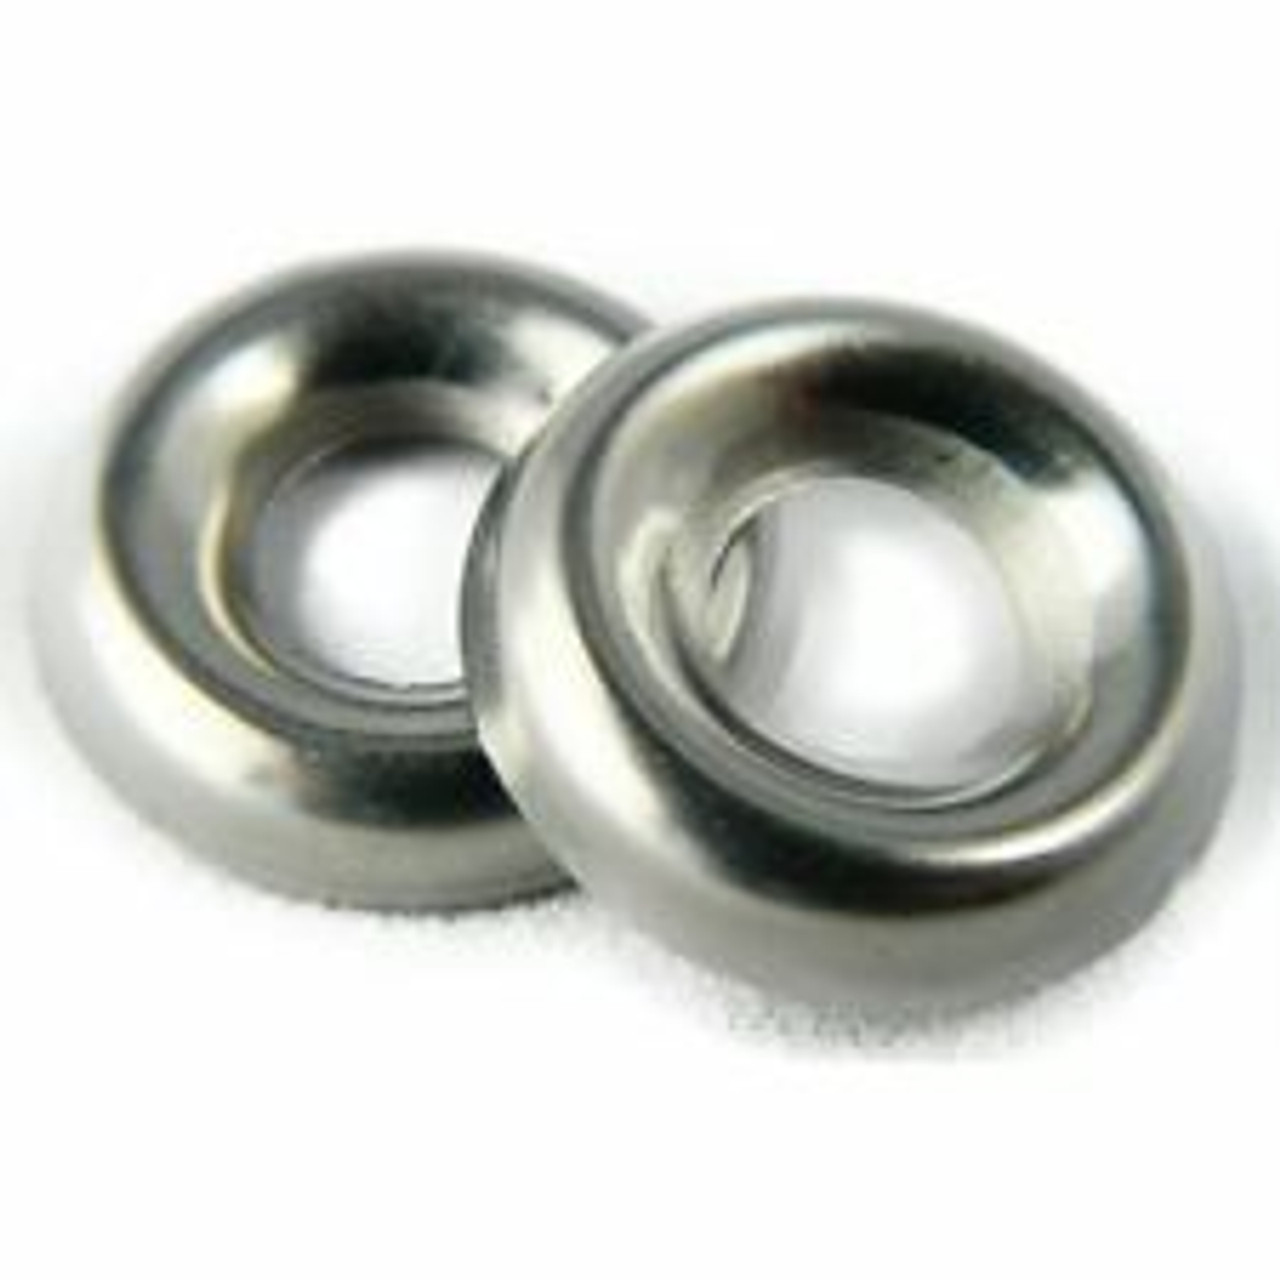 """Countersunk Type Washer Screw Size: #4 I.D. 9/64"""" O.D. 3/8"""" Nickel Plated Brass 100 Per Box Click Next Image For Washer Size Chart"""